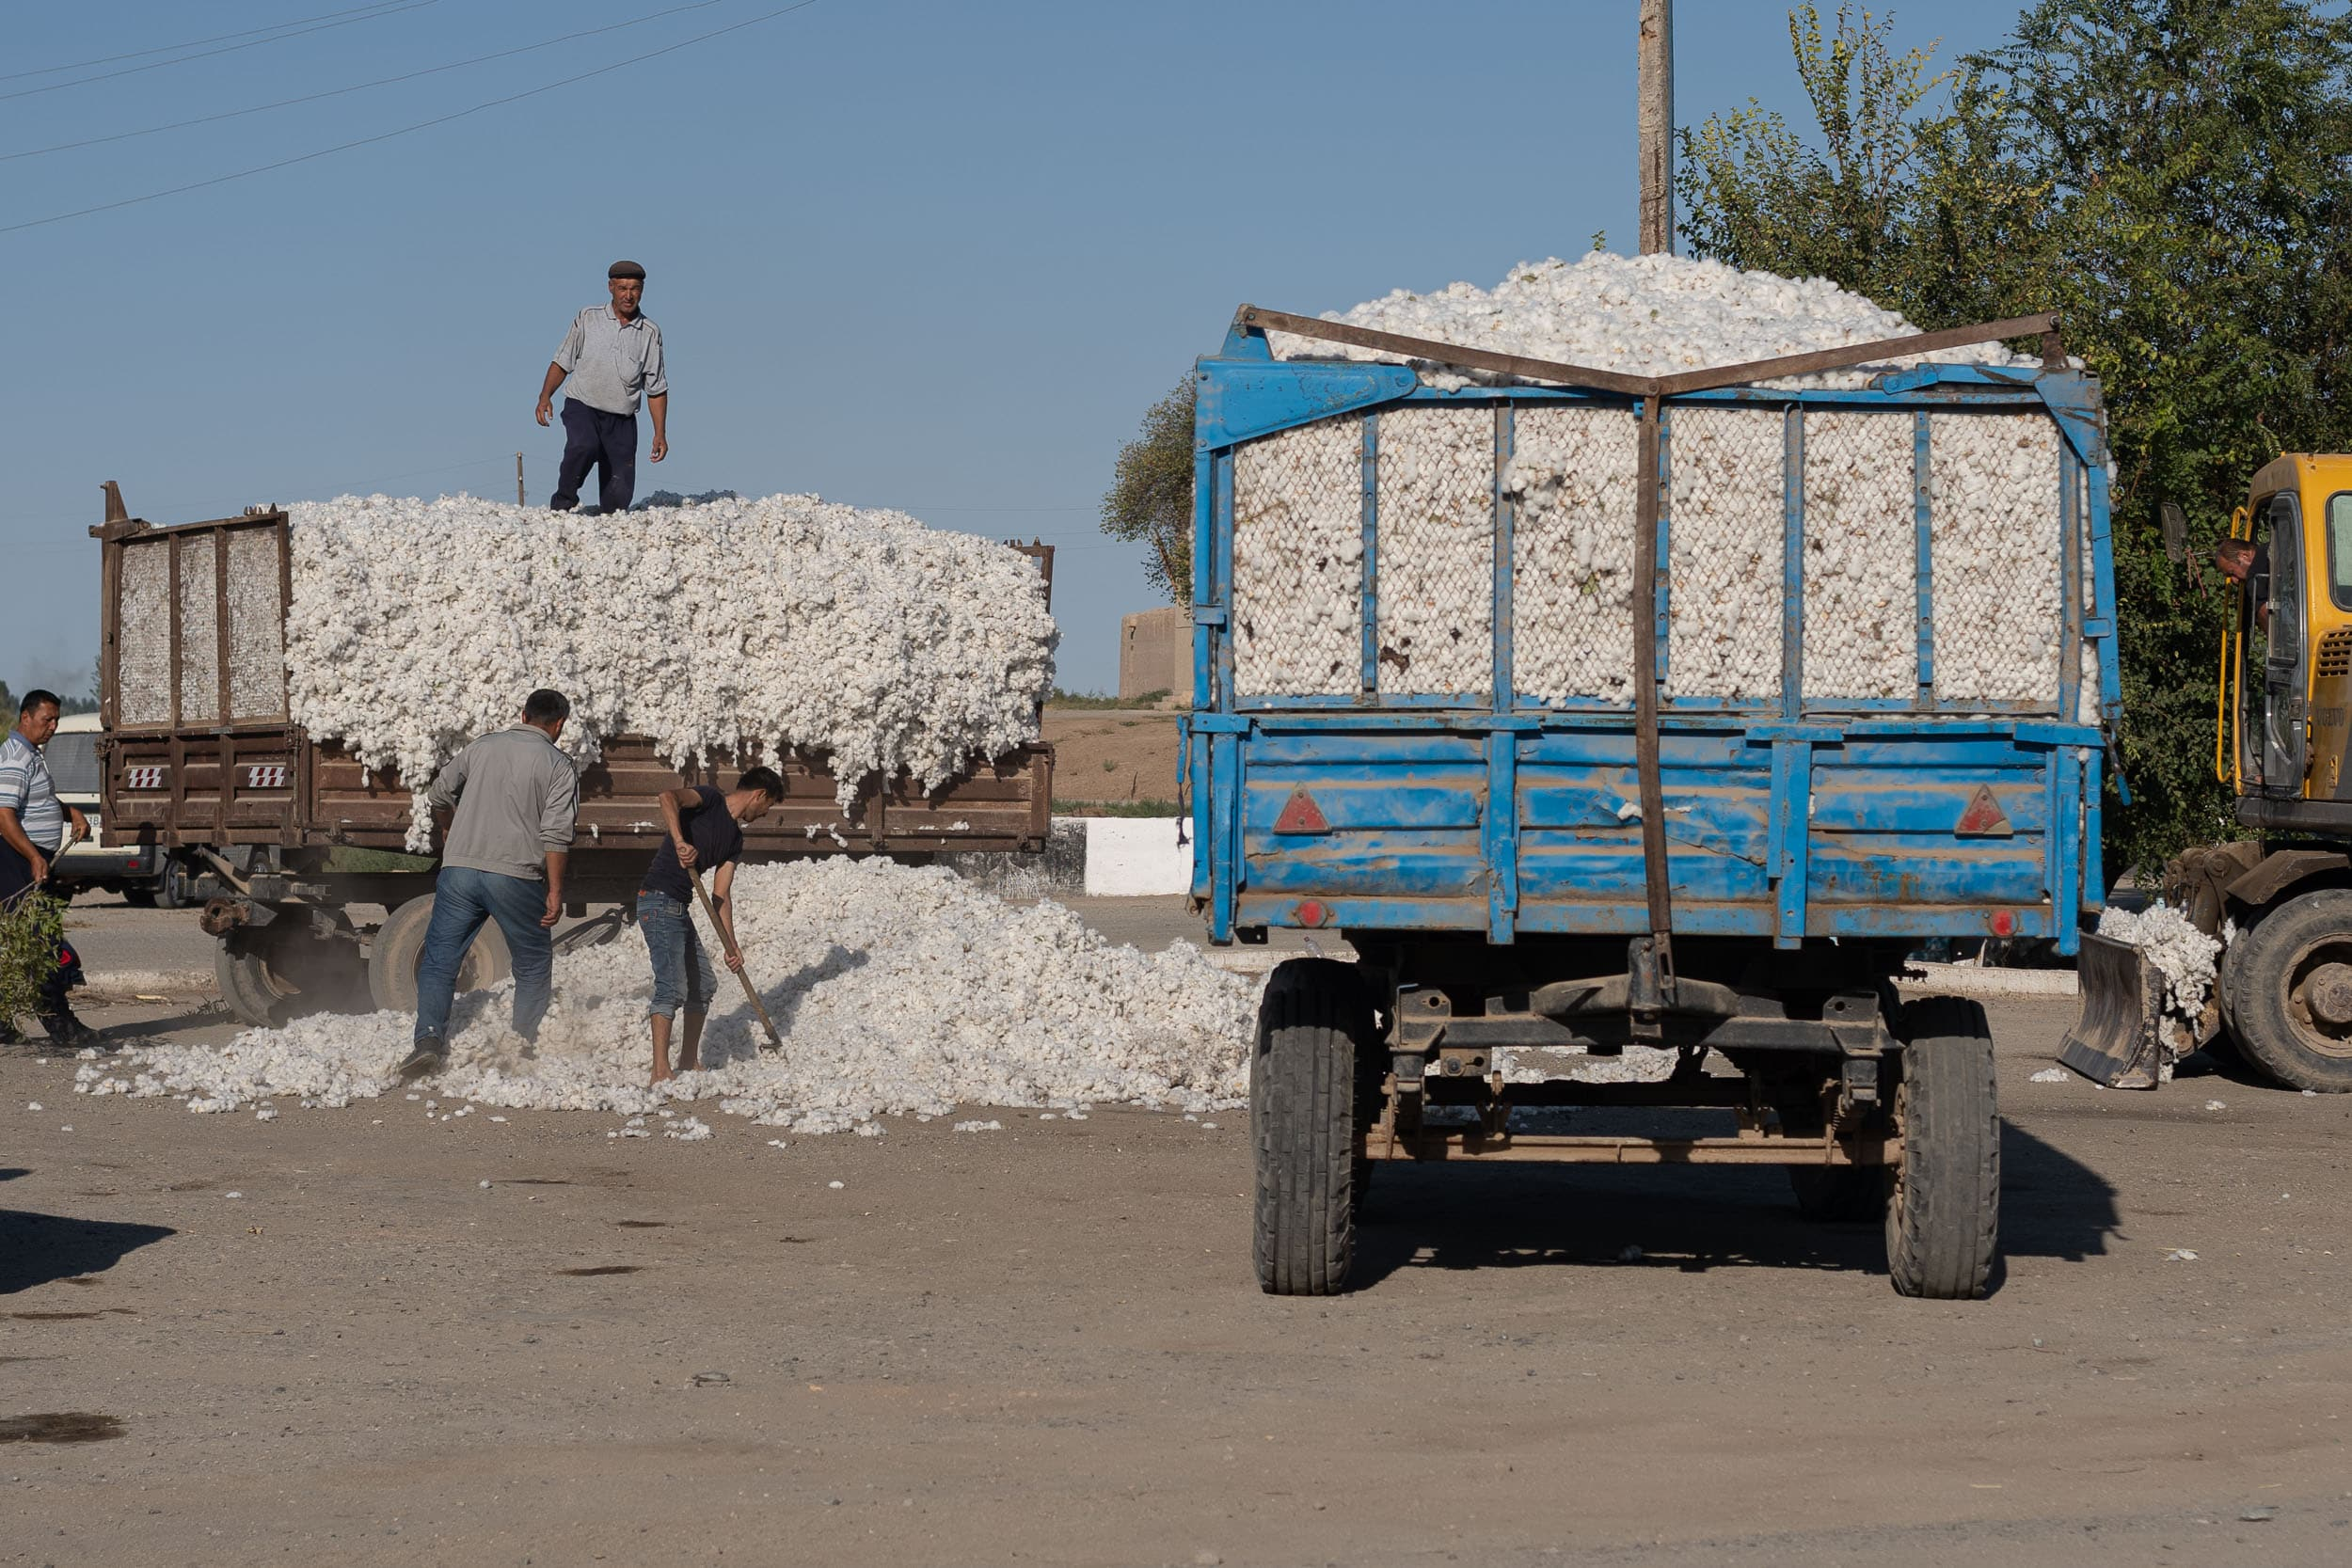 cotton farmers of Uzbekistan